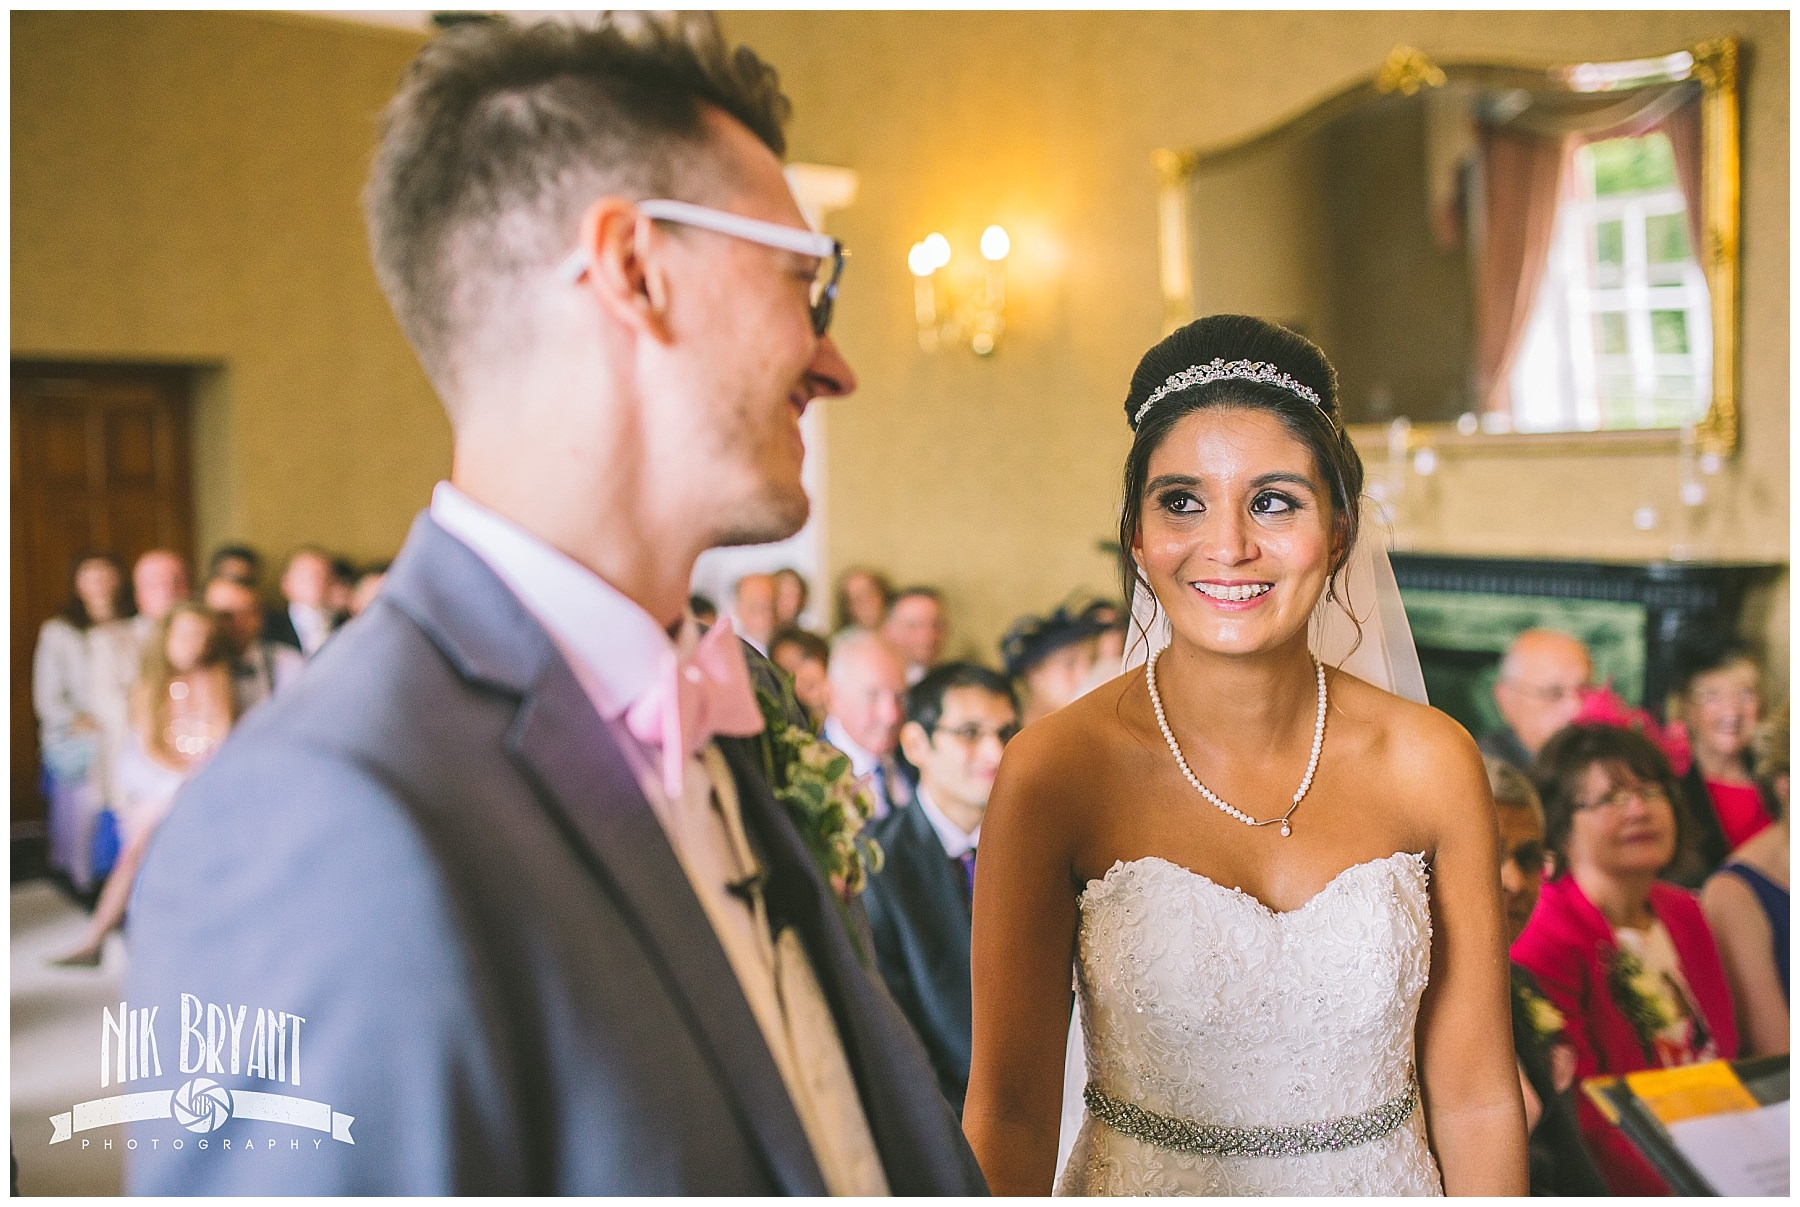 Bride and groom during wedding ceremony at shrigley hall